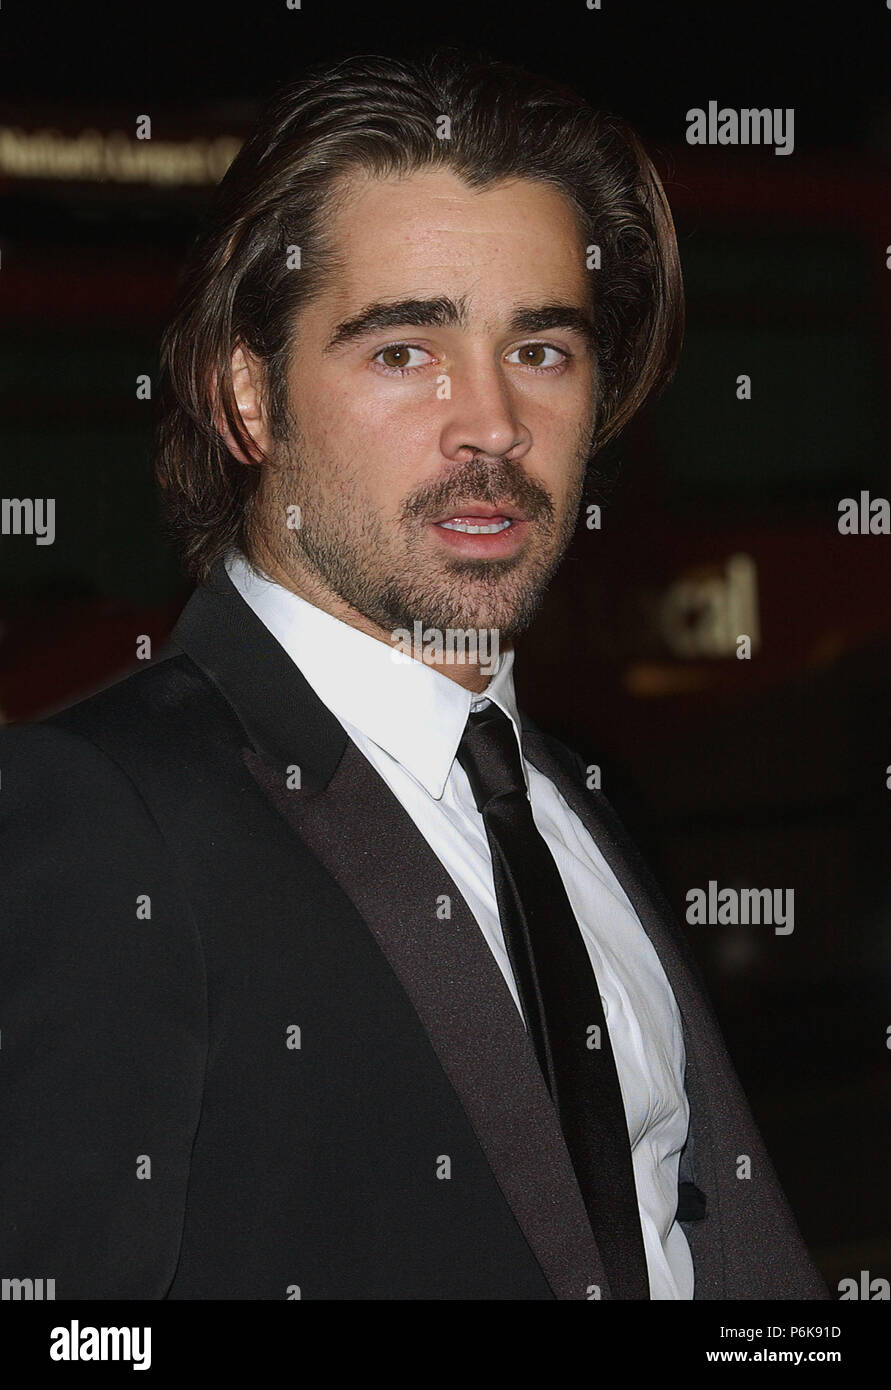 Colin Farrell Arriving Alexander Premiere At The Chinese Theatre In Los Angeless November 16 2004 Farrellcolin018a Red Carpet Event Vertical Usa Film Industry Celebrities Photography Bestof Arts Culture And Entertainment Topix Celebrities